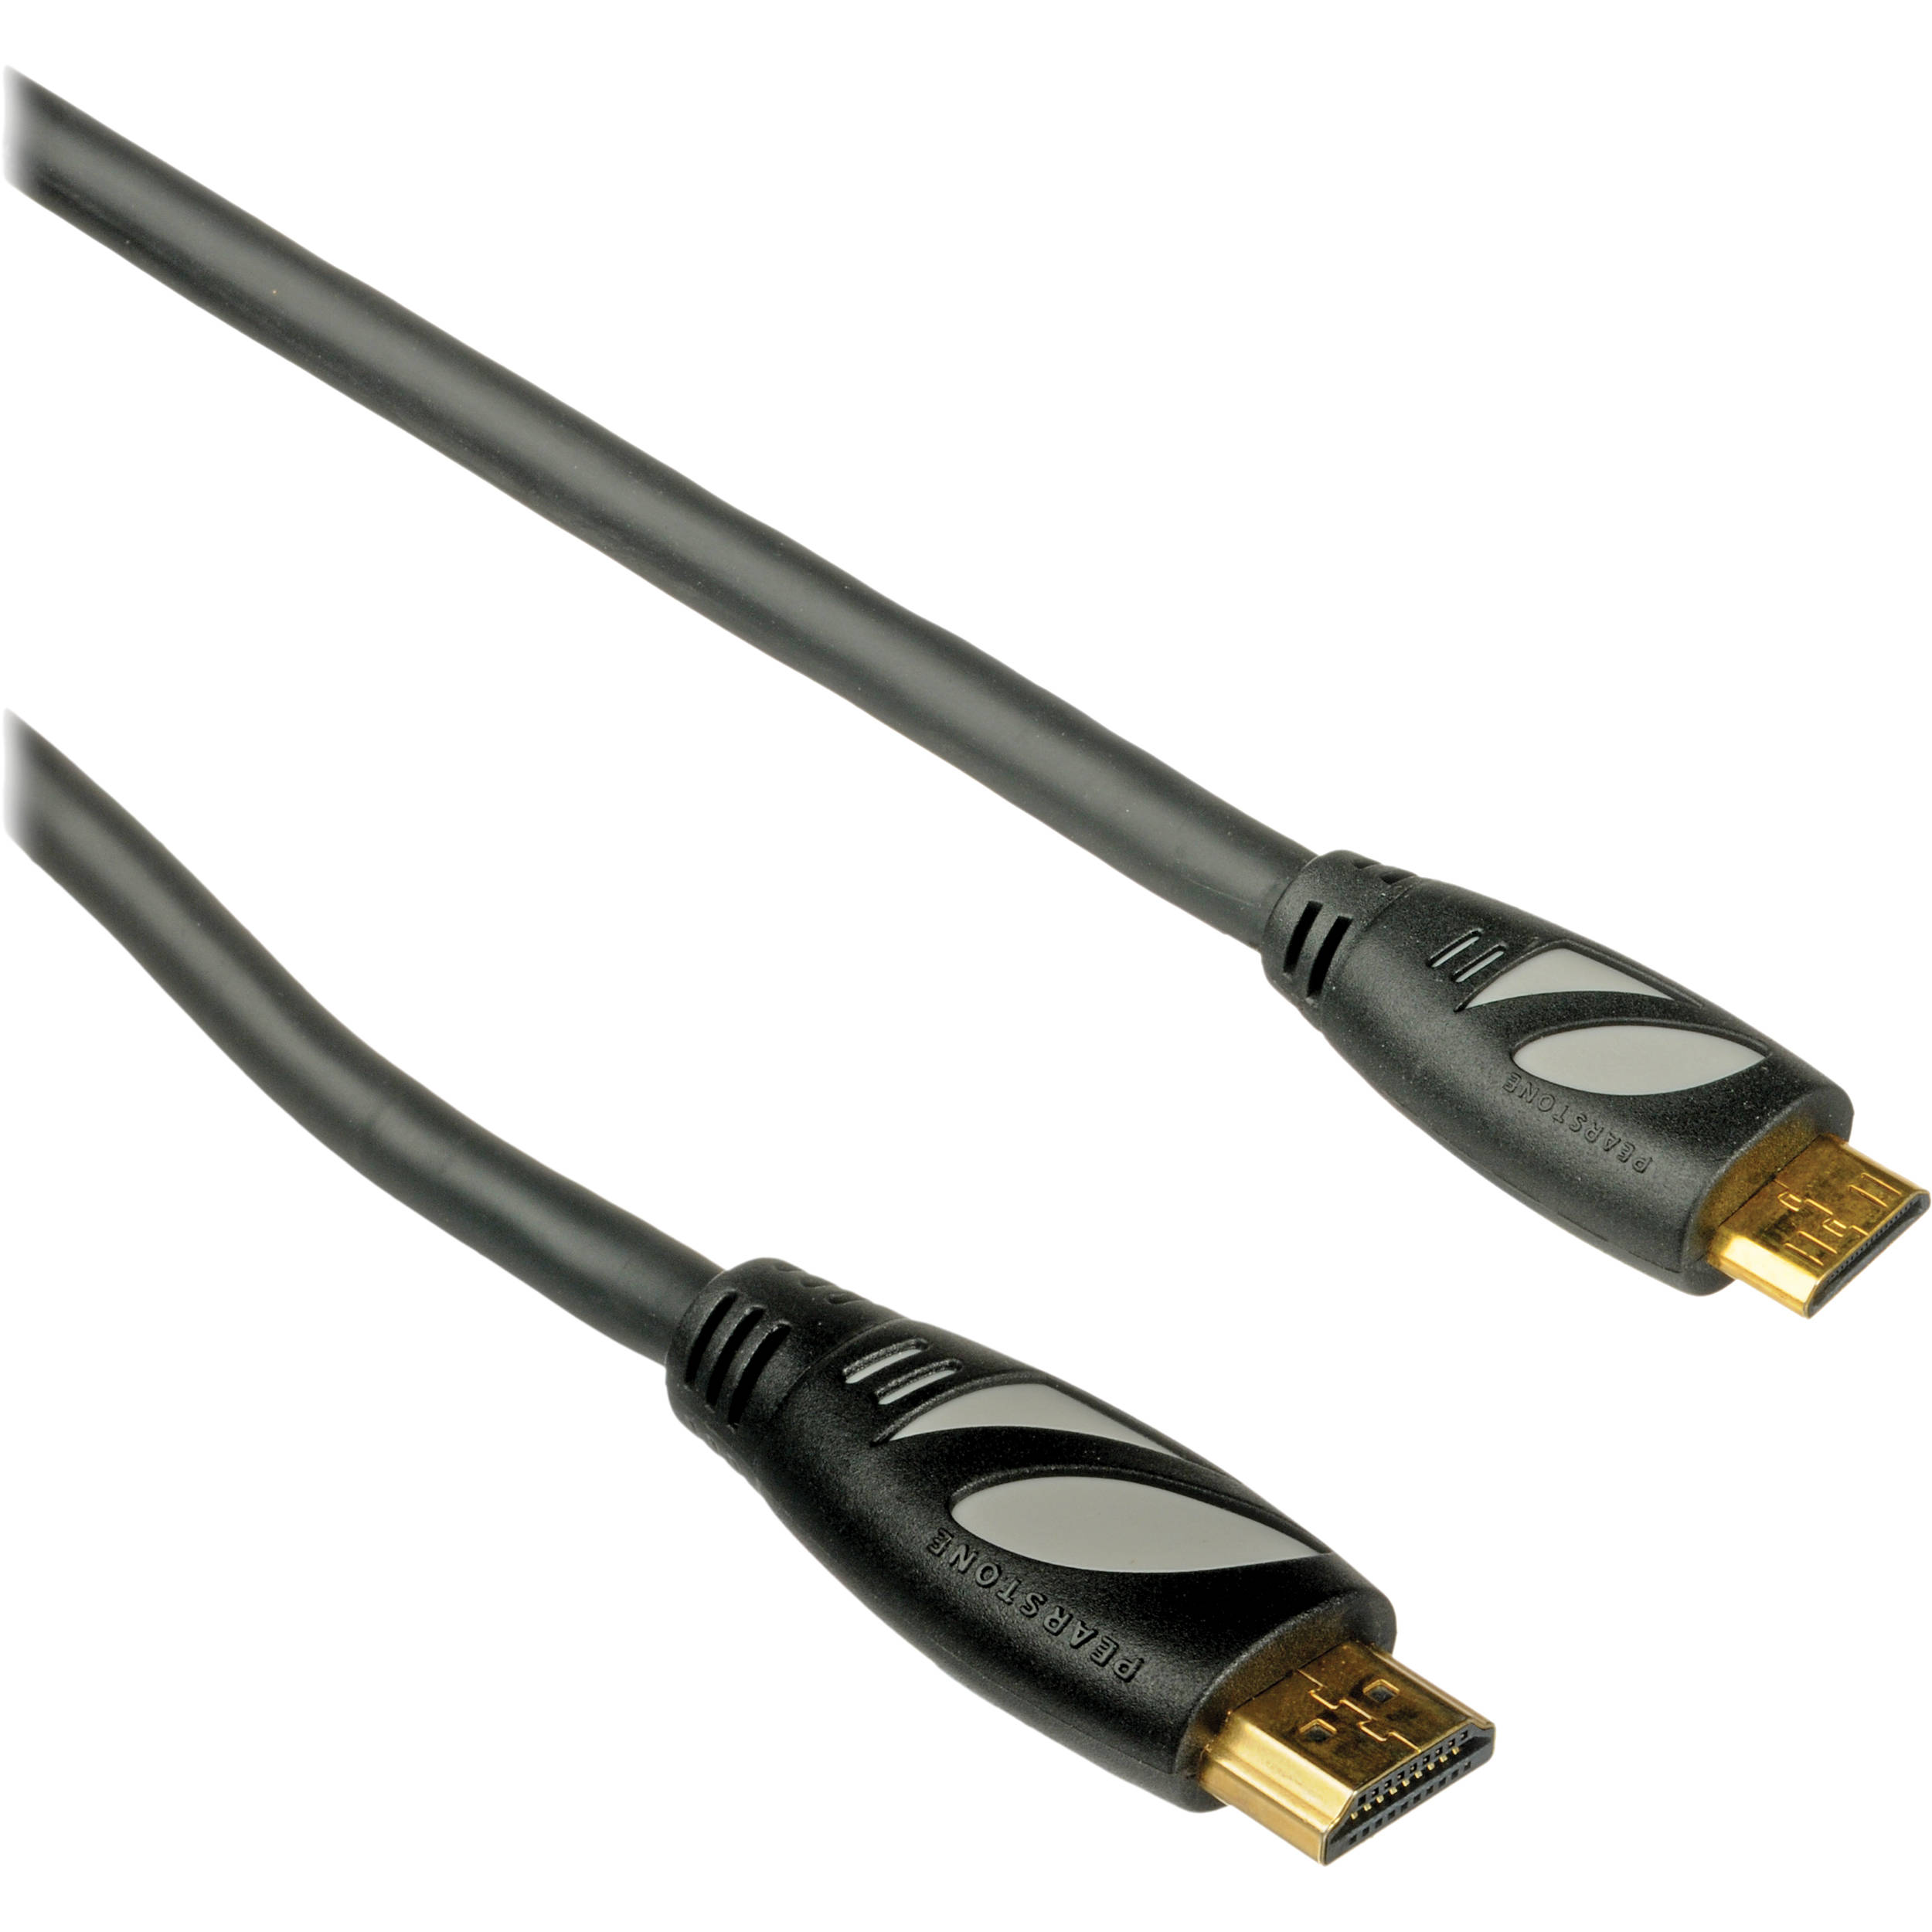 pearstone hdc 106 high speed mini hdmi to hdmi cable hdc 106 b h. Black Bedroom Furniture Sets. Home Design Ideas